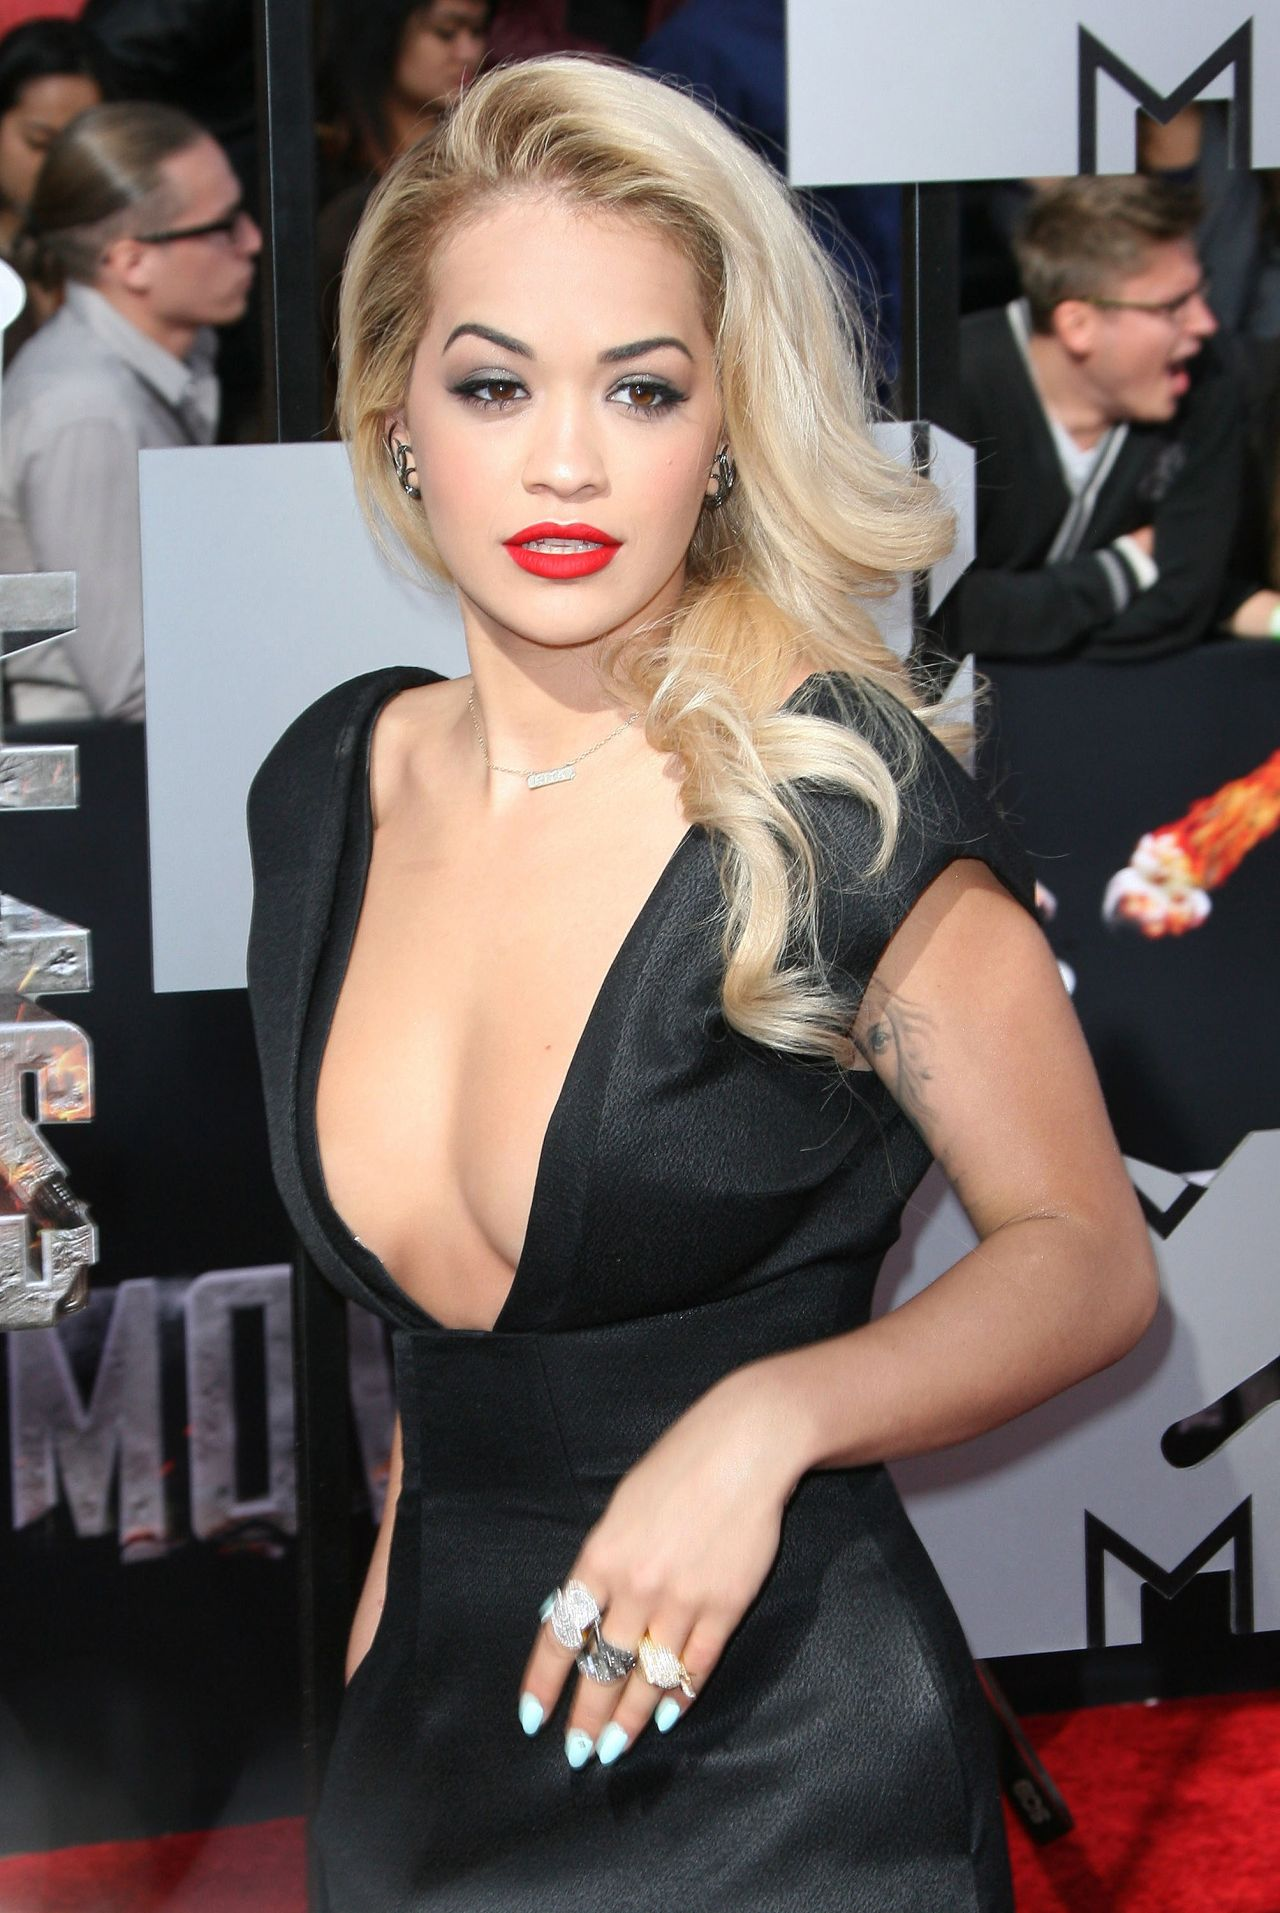 Rita Ora Wearing Barbara Casasola Black Dress - 2014 MTV Movie Awards in Los Angeles